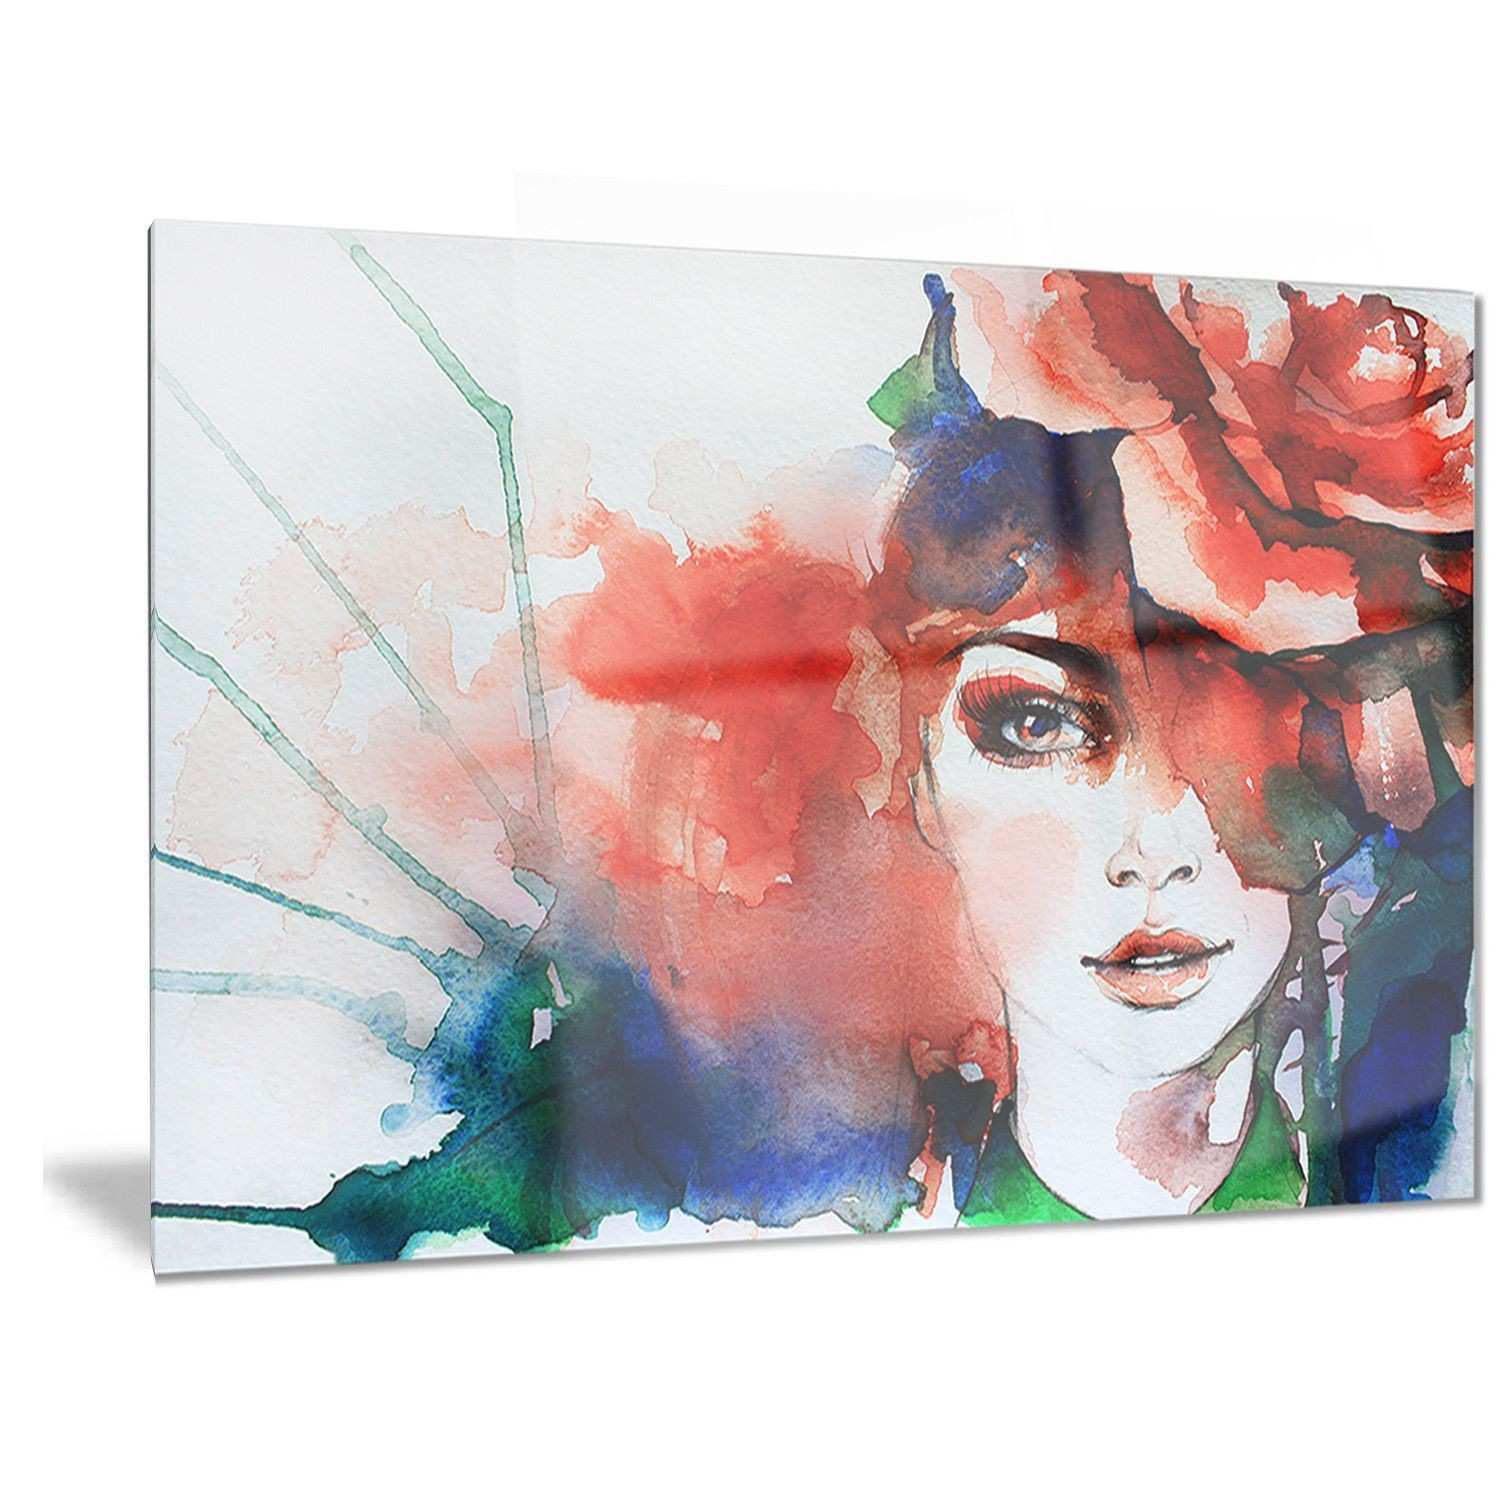 Designart Woman with Rose Illustration Abstract Metal Wall Art